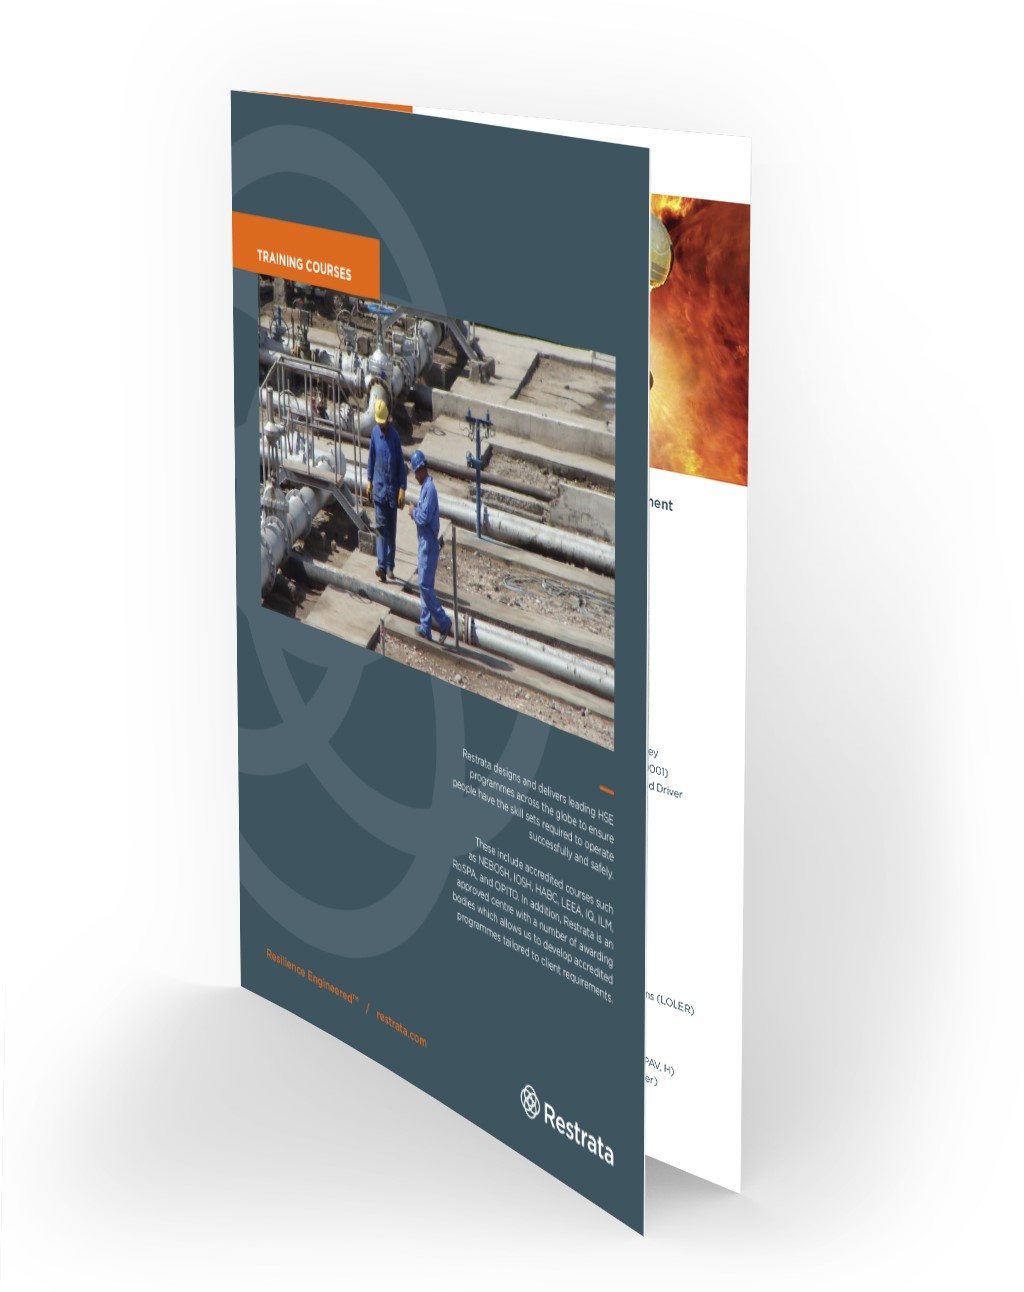 A brochure with a wide scope of trainings offered by Restrata experienced team